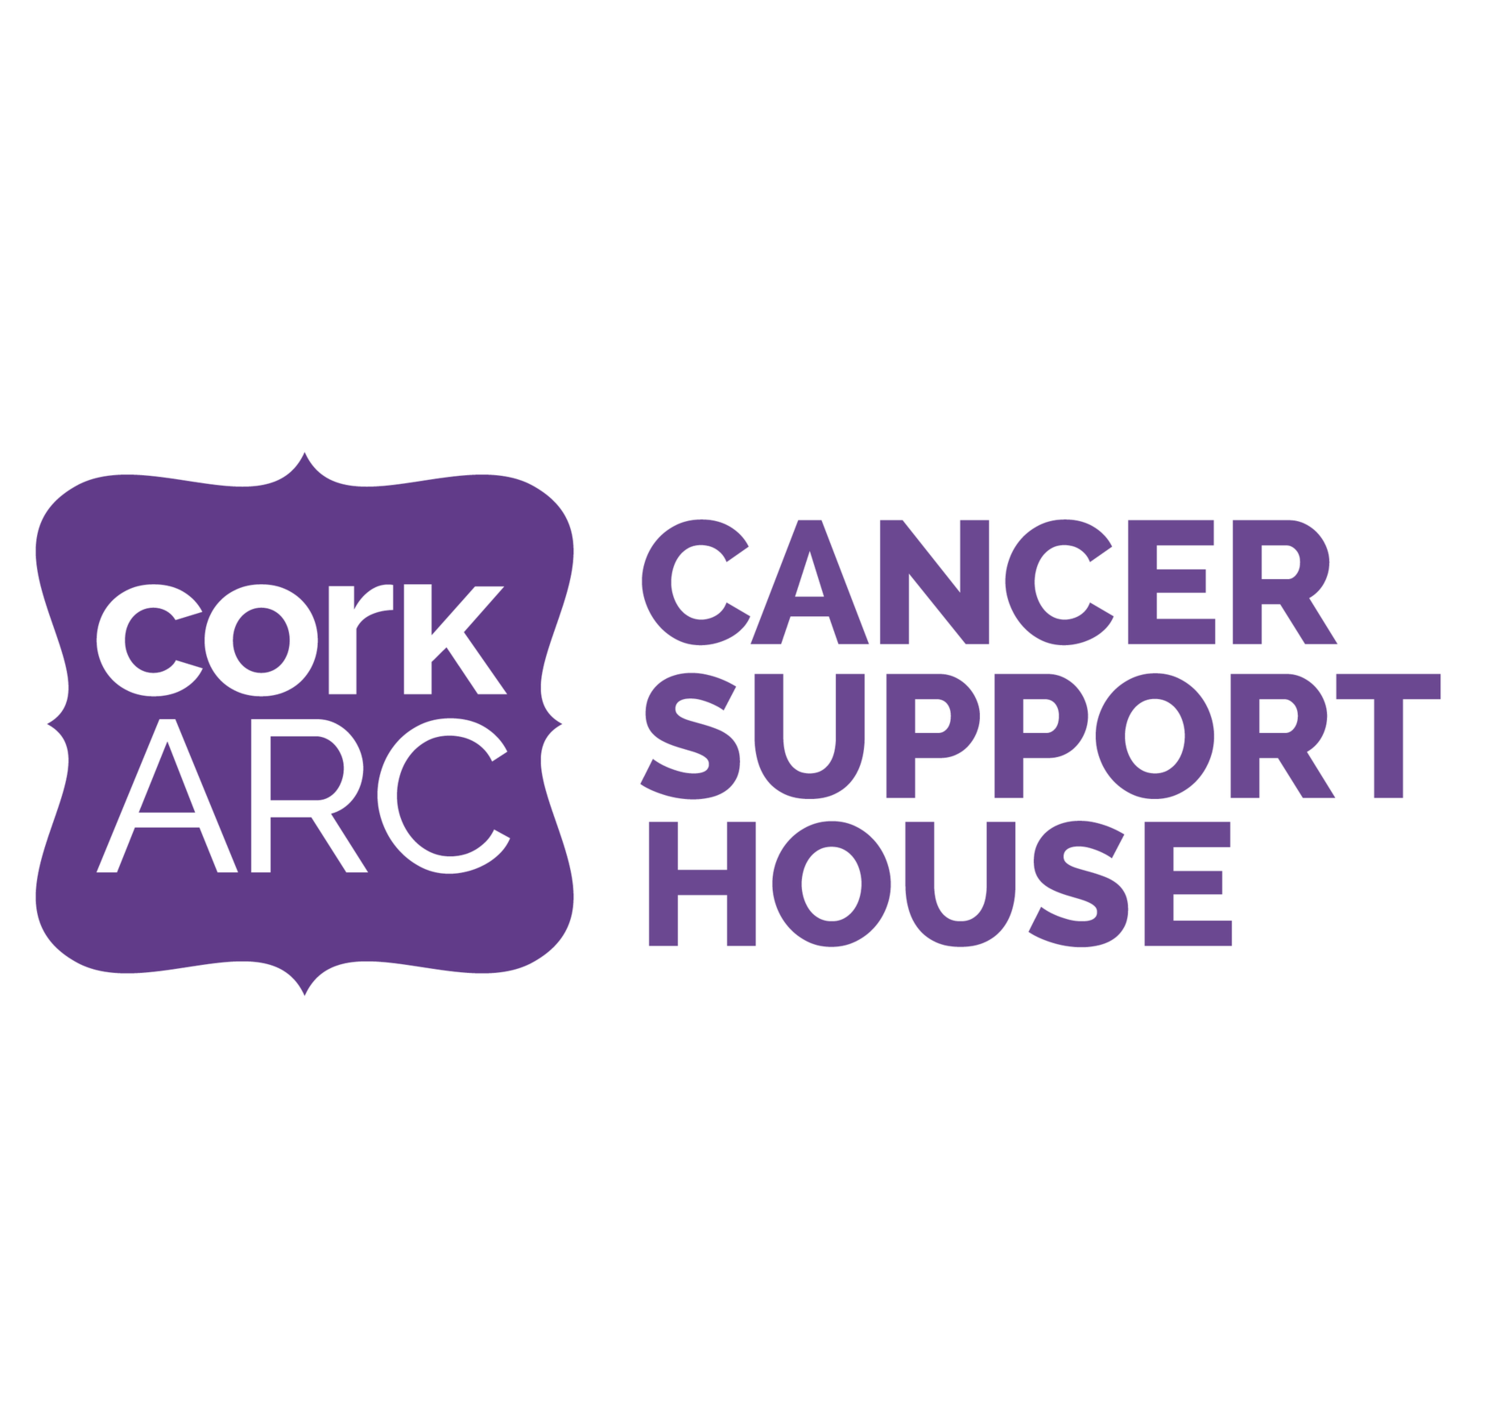 Cork ARC Cancer Support logo